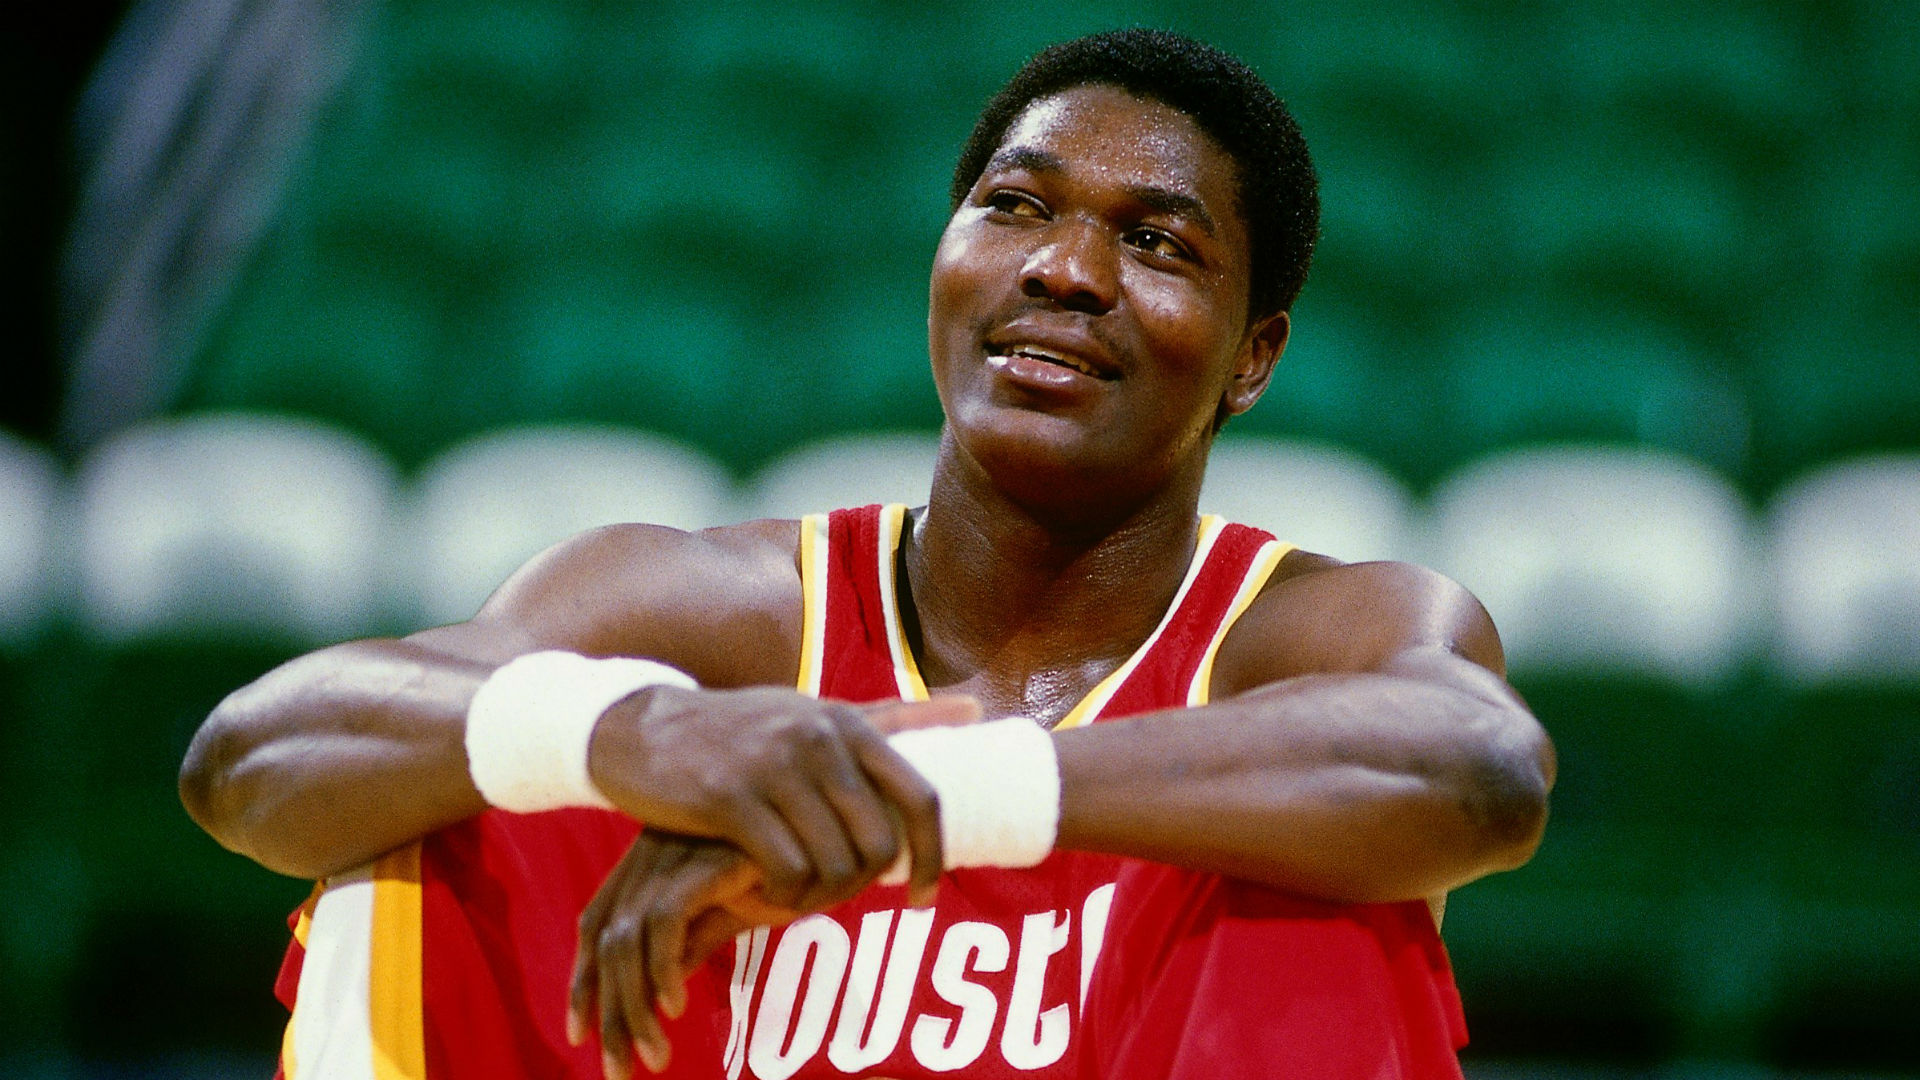 This Date in NBA History (Oct. 28): Hakeem Olajuwon shows why he was taken No. 1 in his NBA debut